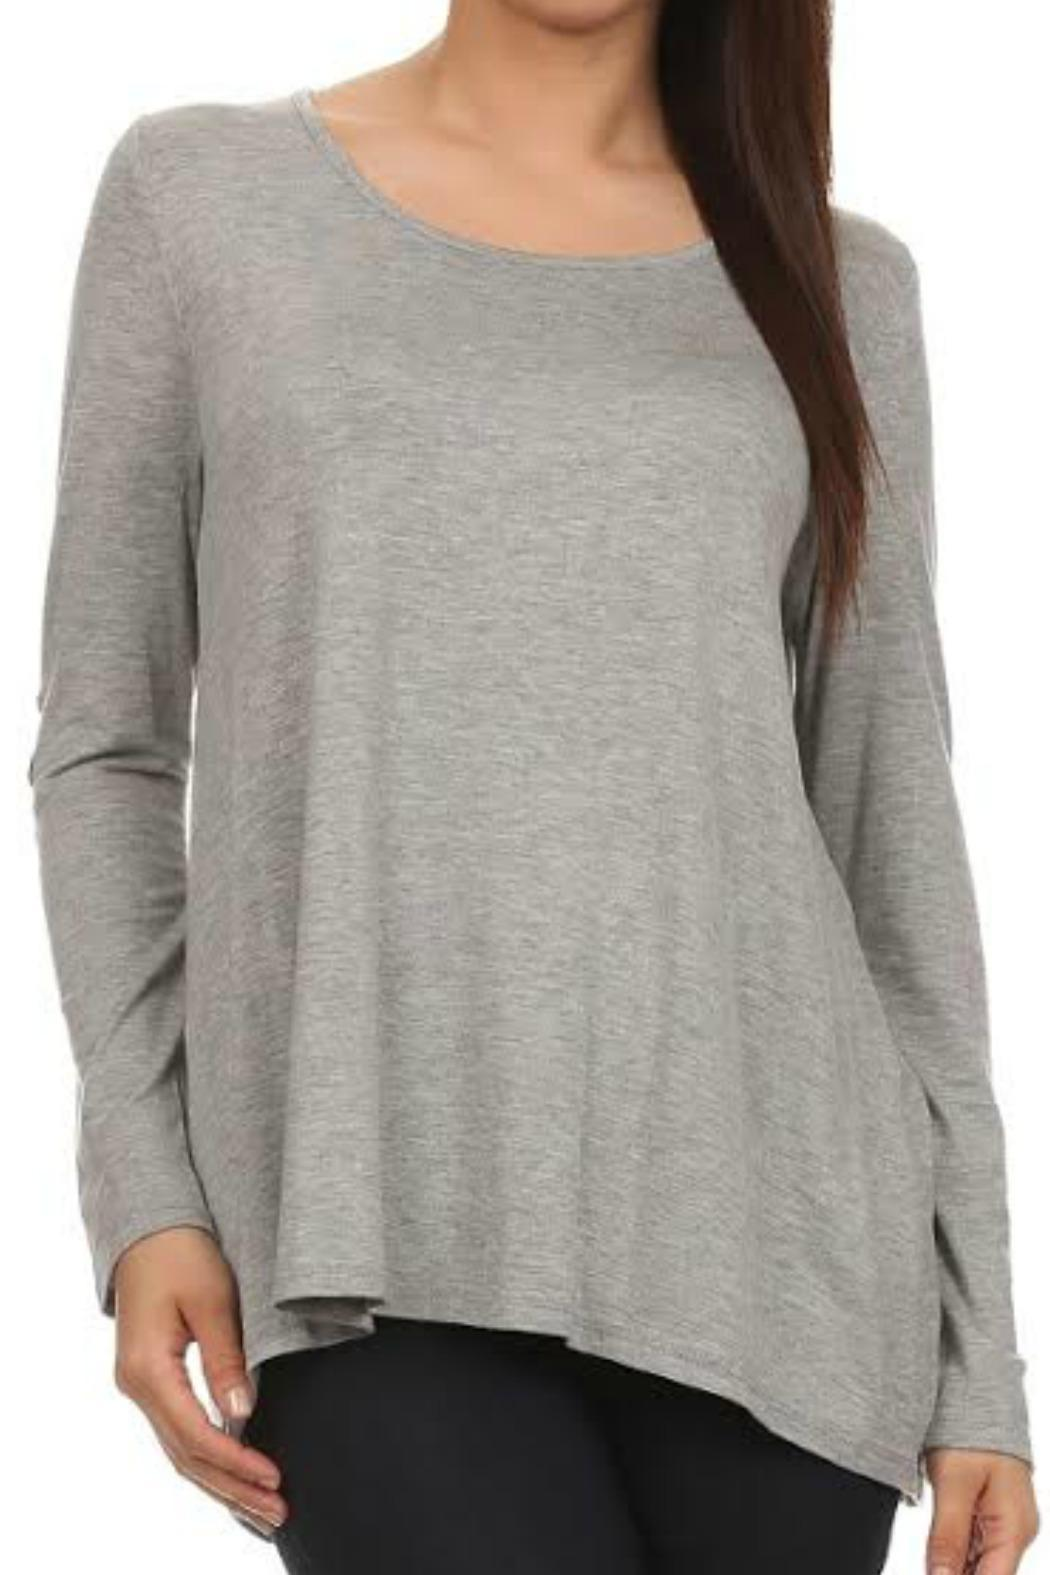 Vivo clothing elbow patch top from idaho by garment